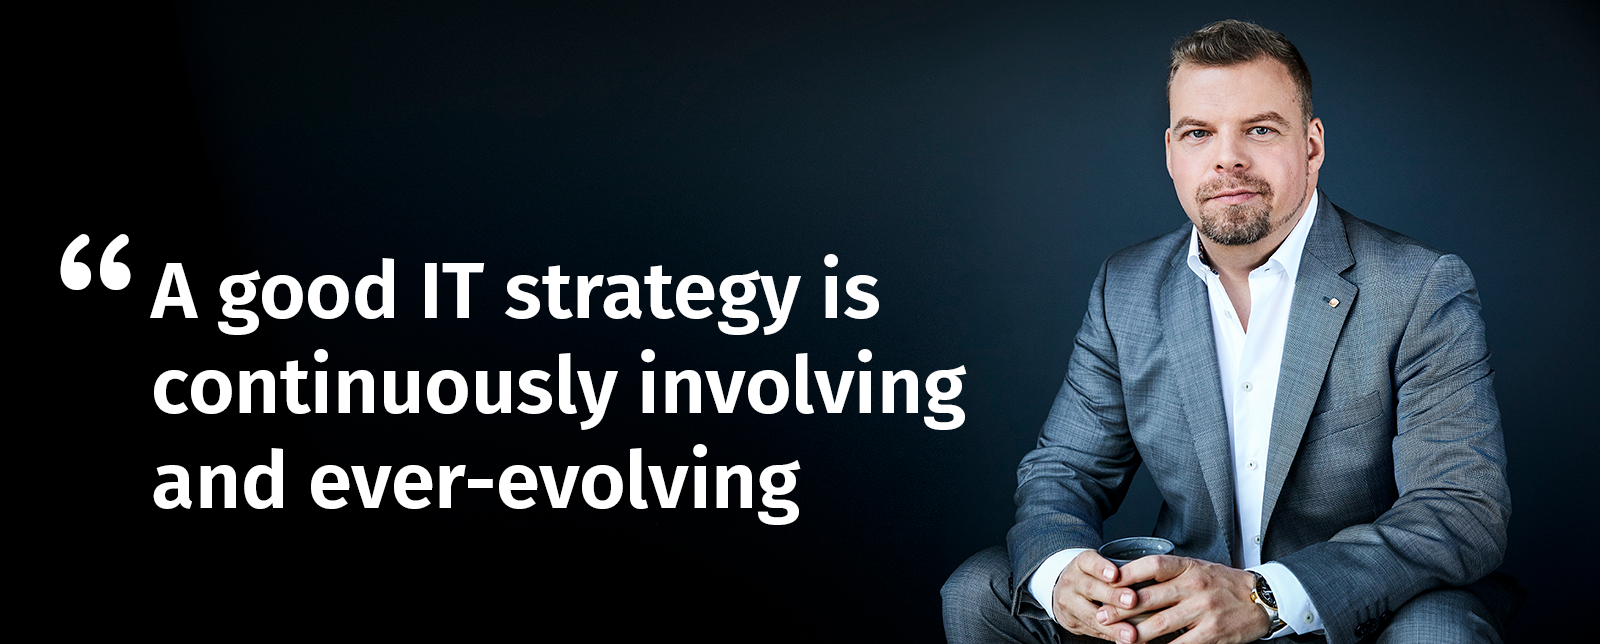 A good it strategy is continuously involving and ever-evolving - it advisory